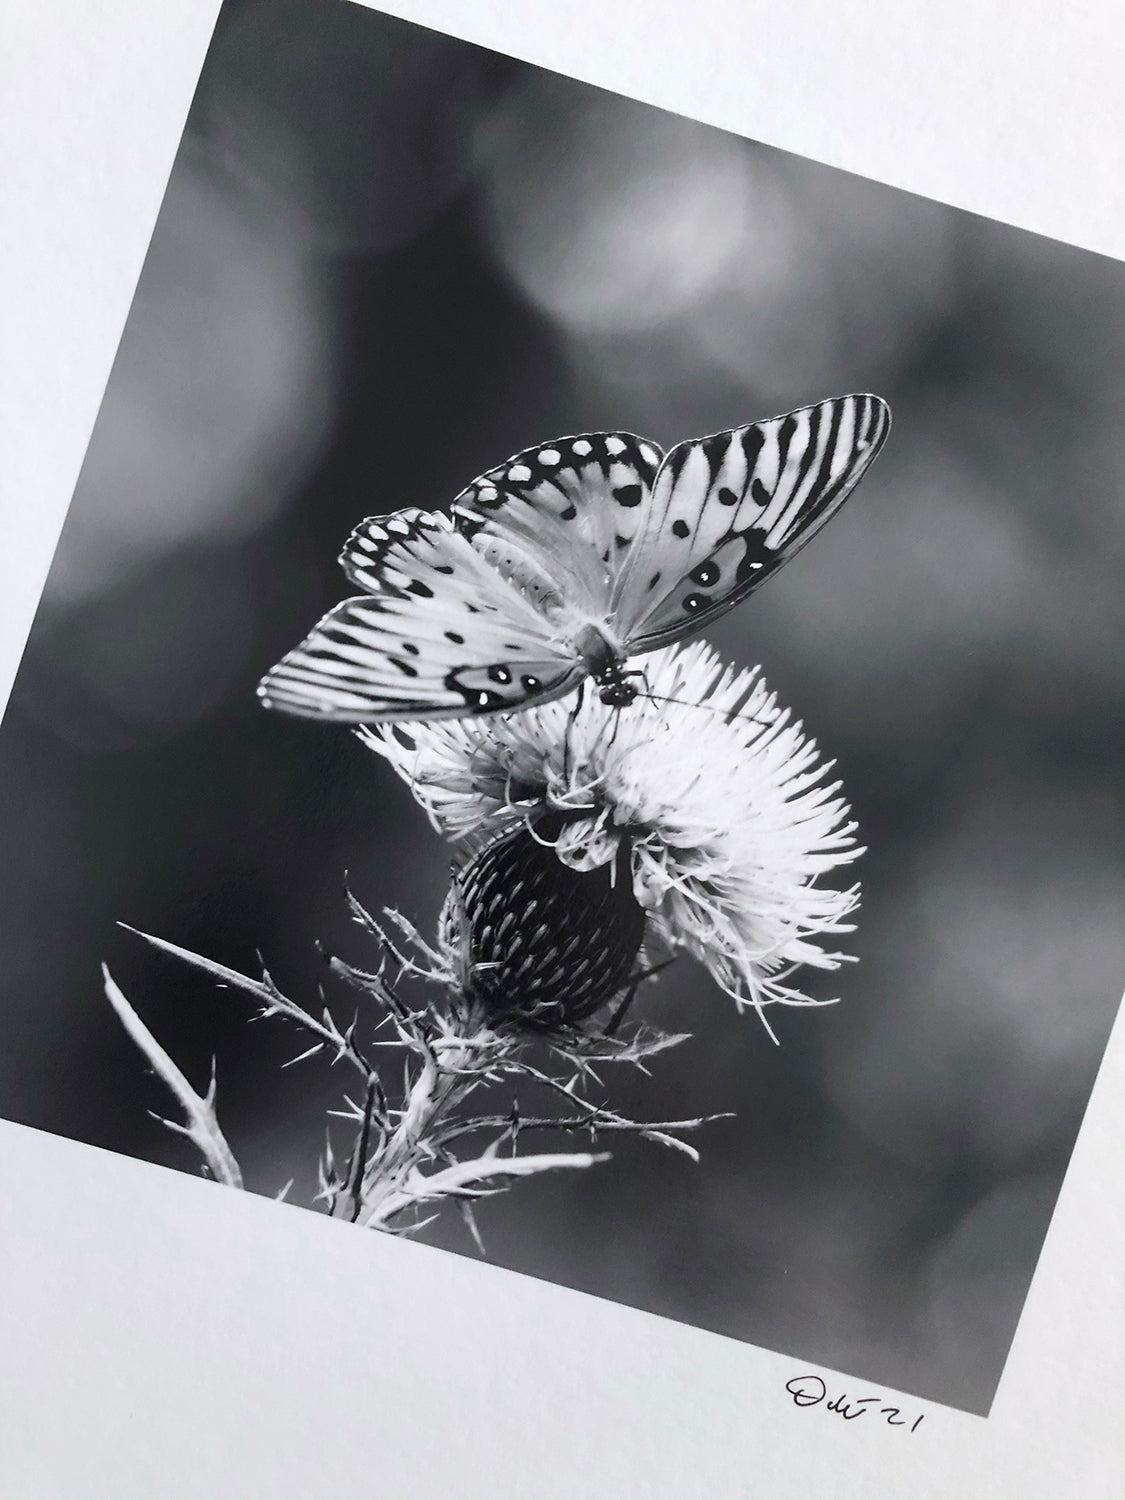 Black and white photograph of a Gulf Fritillary butterfly on a purple thistle. At 8 x 8-inches, this was the smallest print in the project.